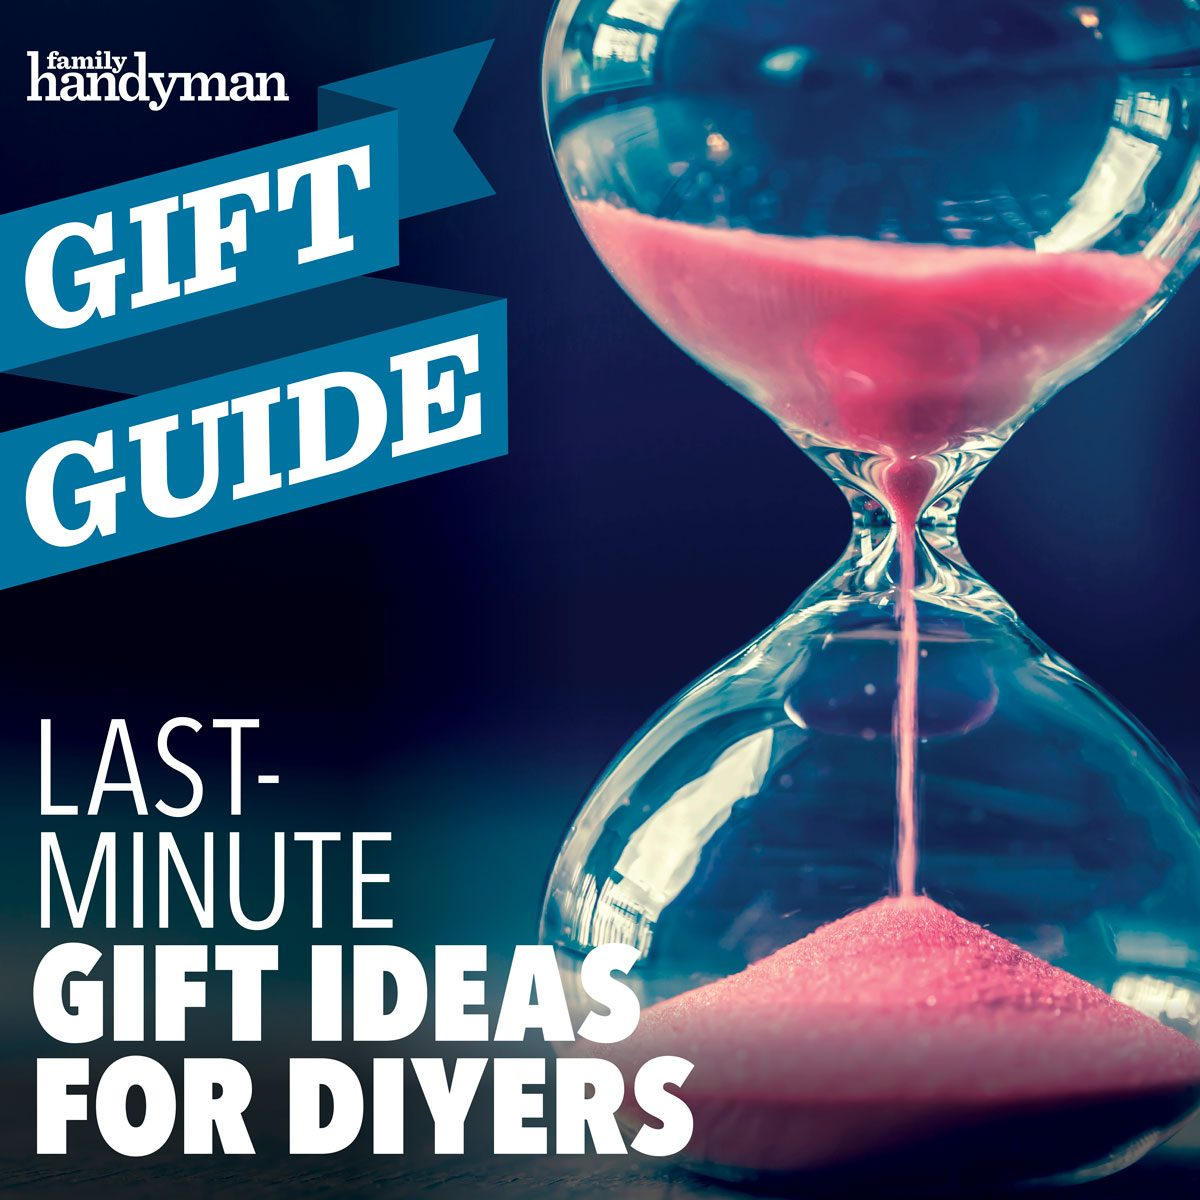 Best Last-Minute Gifts for the Whole Family  - cover